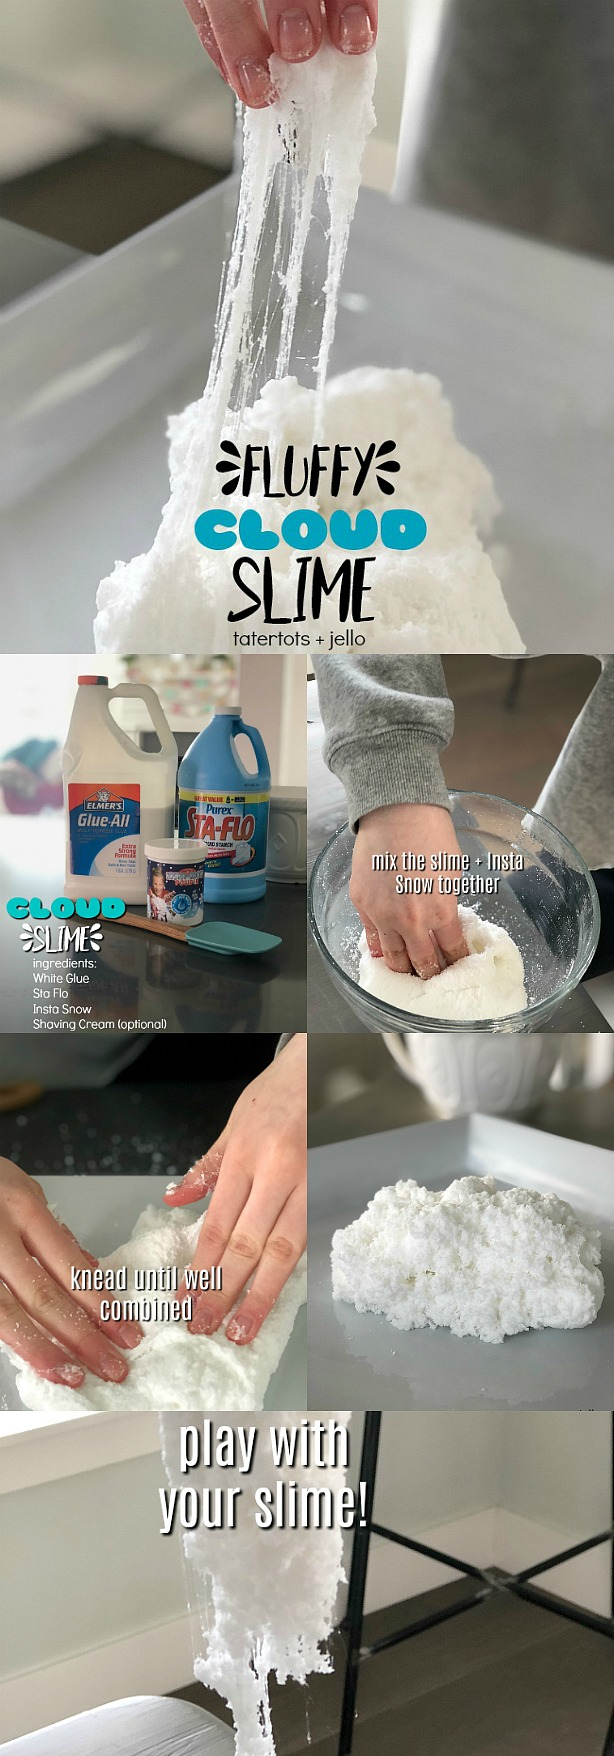 https://tatertotsandjello.com/2017/04/3-ingredient-safe-puffy-slime-recipe.html